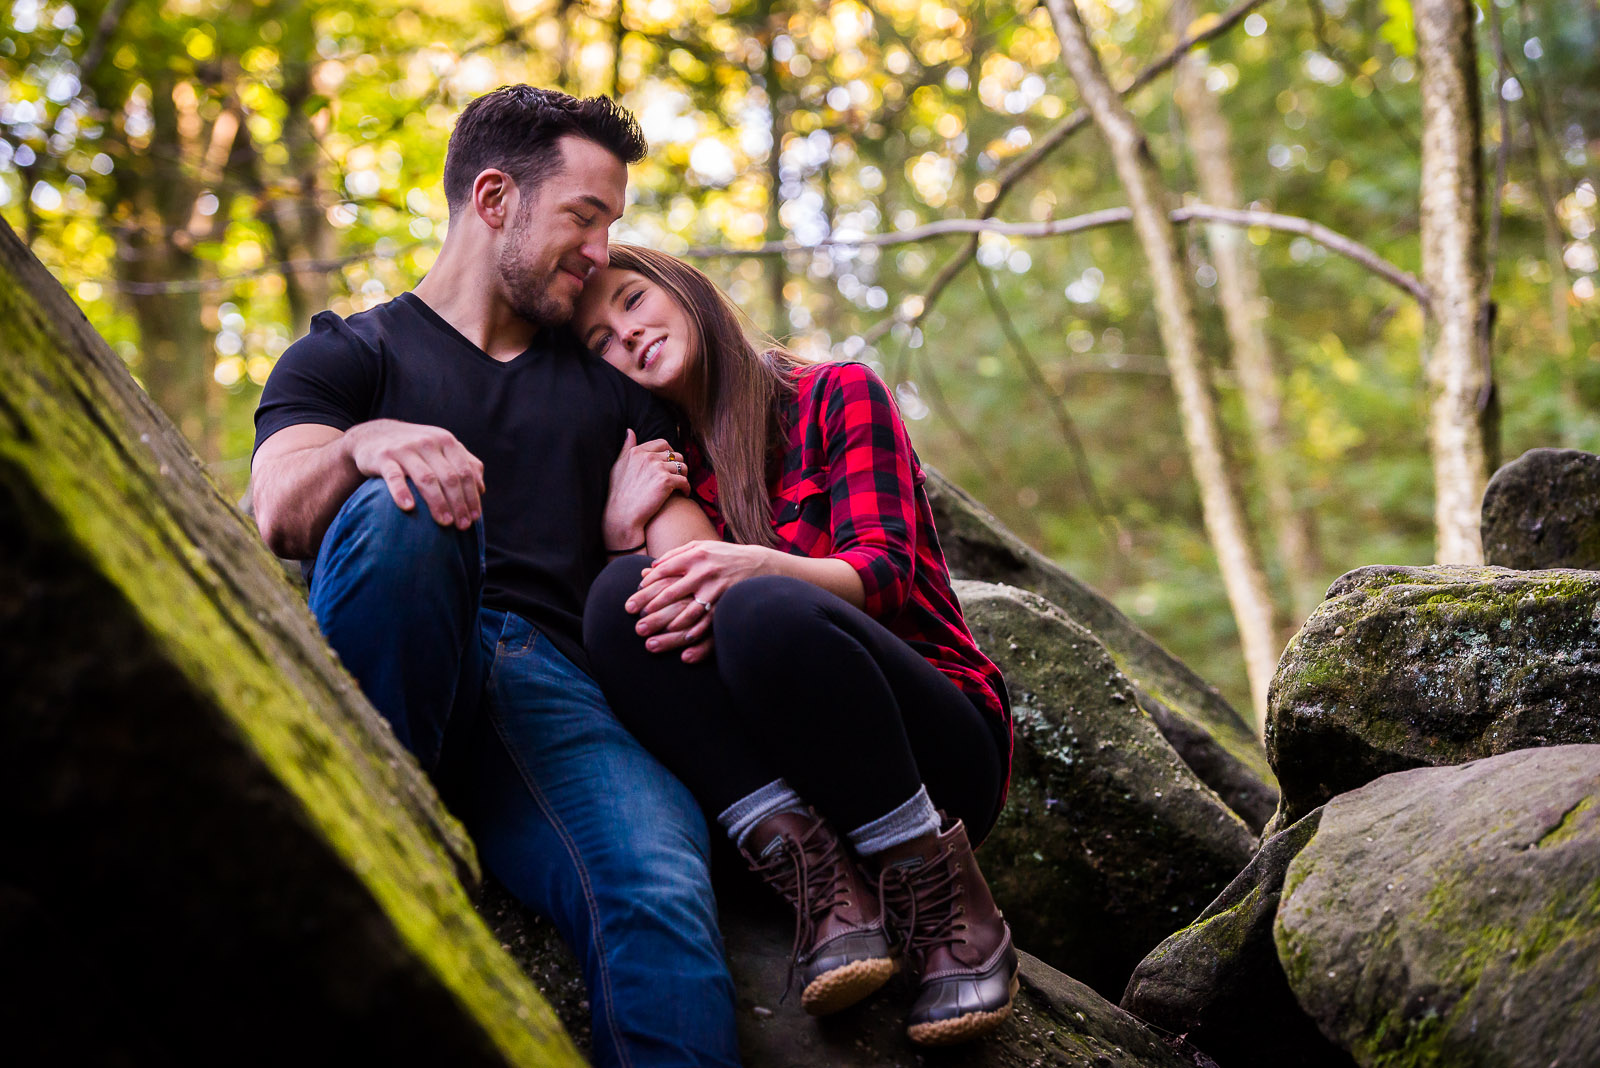 Eric_and_Christy_Photography_Blog_Stephanie_Nick_Engagement-3